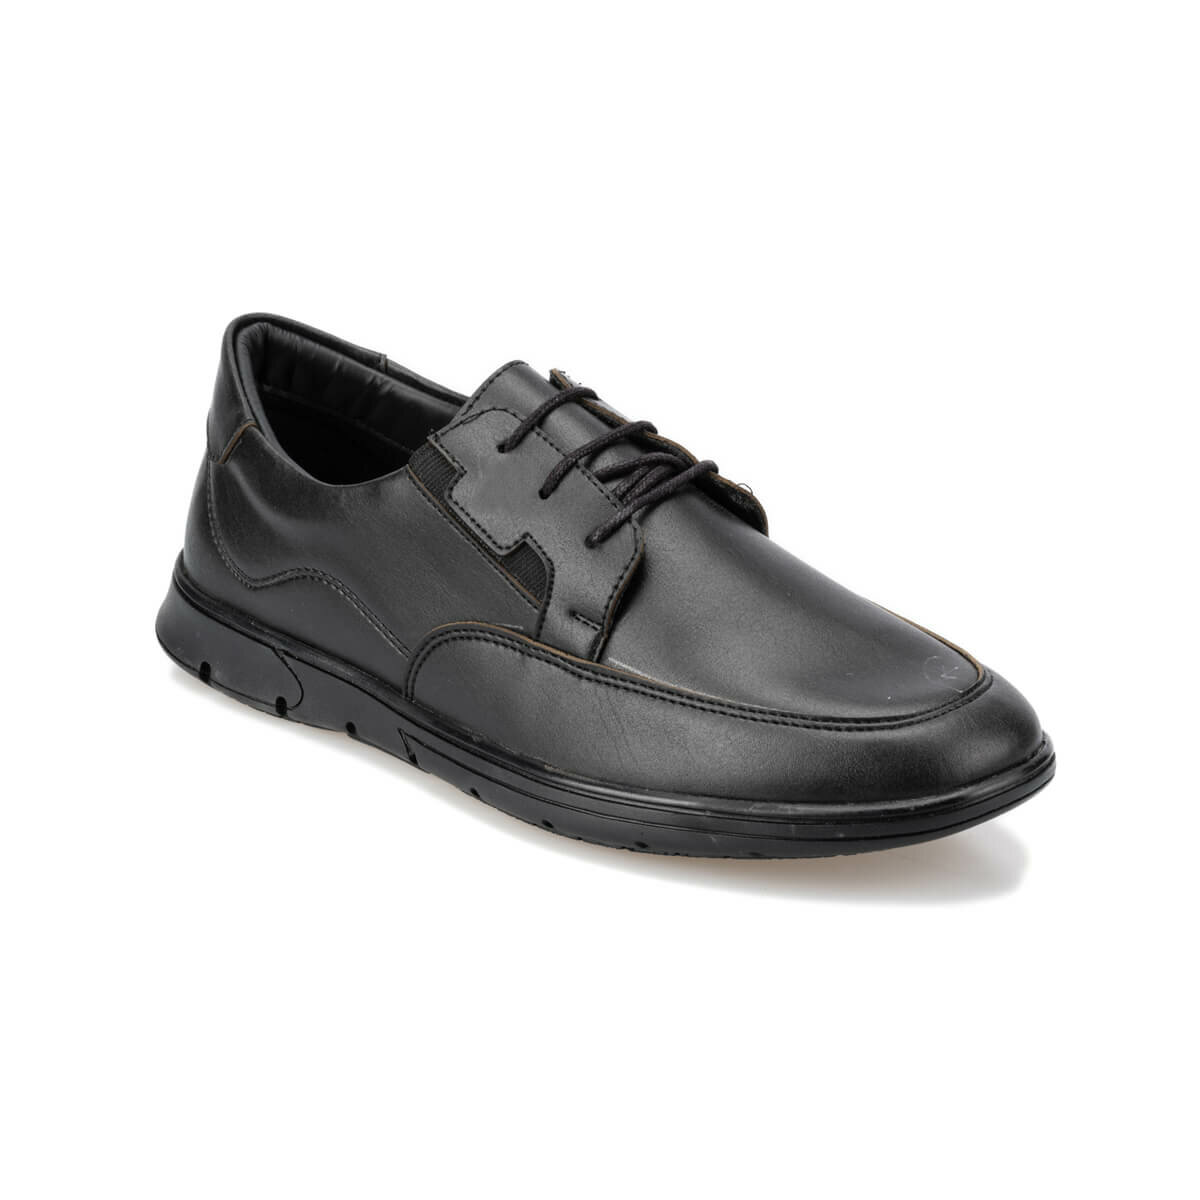 FLO 92.150951.M Black Male Shoes Polaris